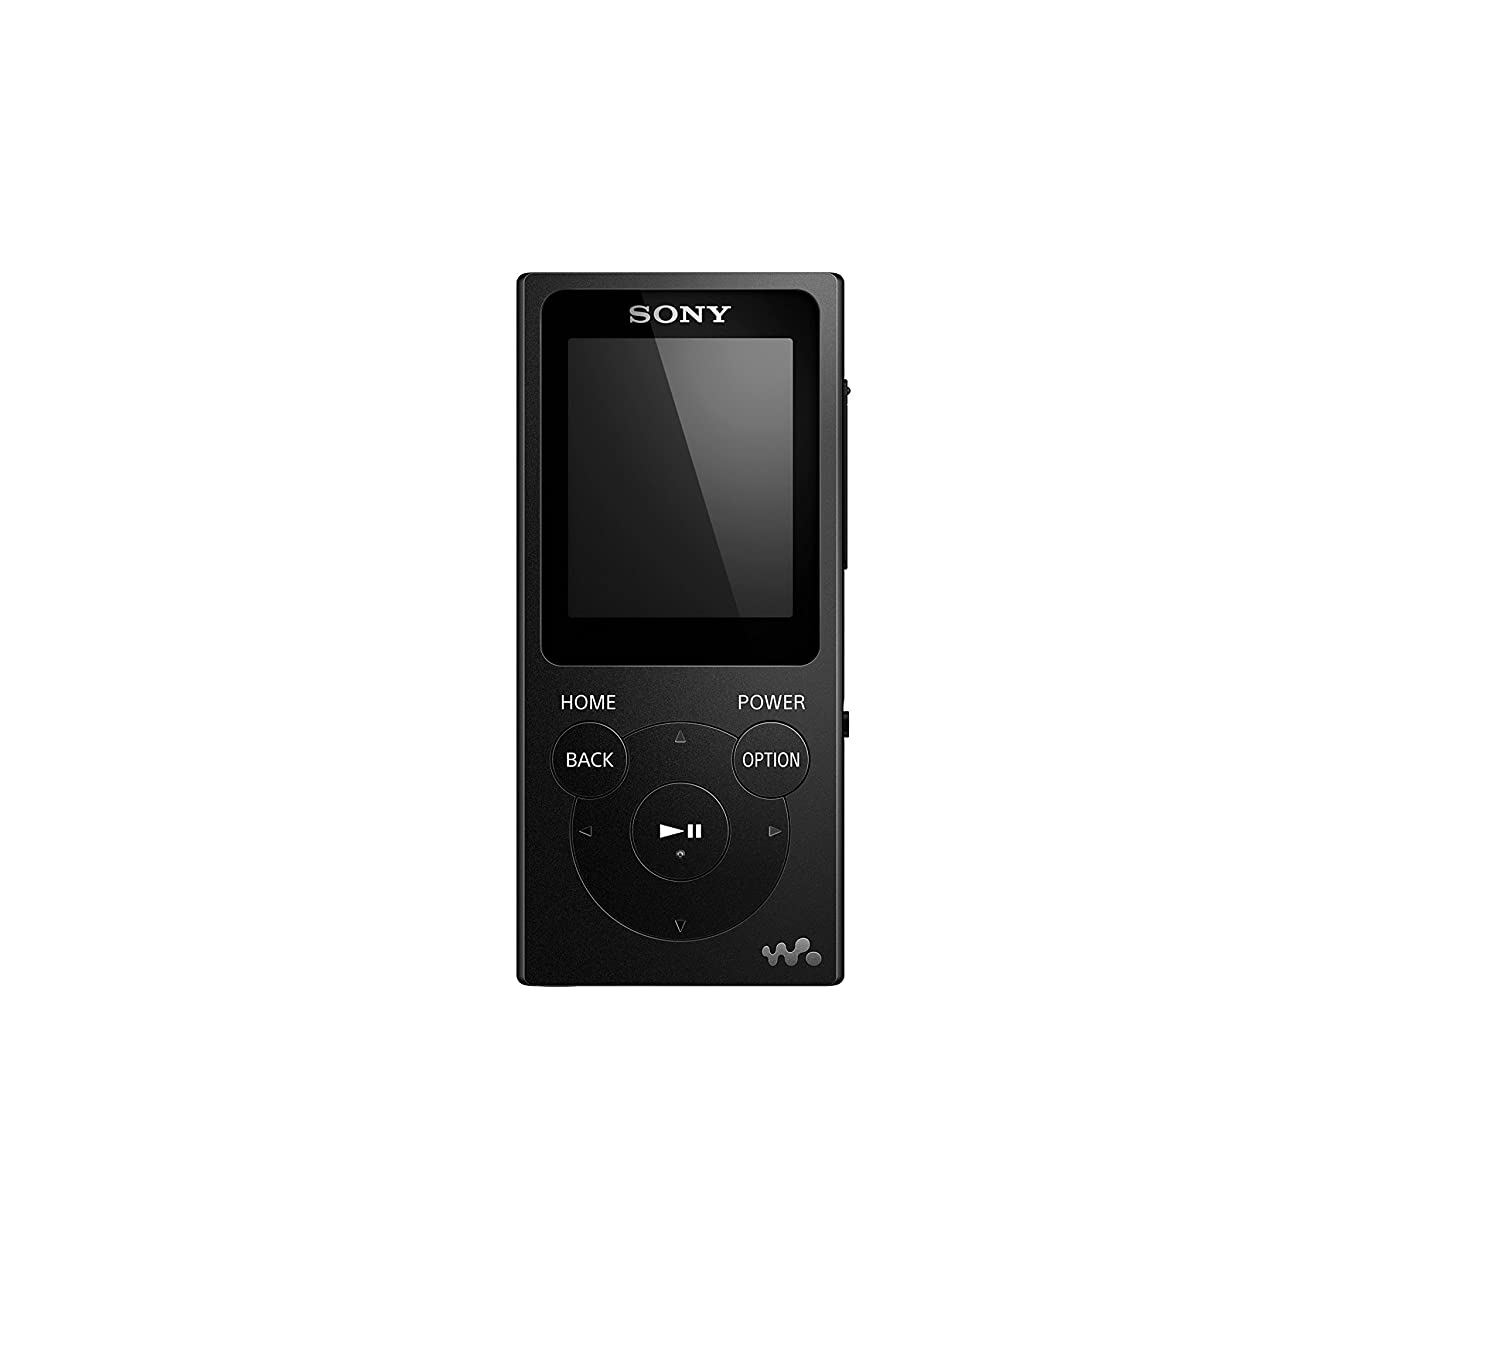 Hifi Players Sports Mp3 Music Player Walkman With 1.8 Inch Screen And Plug-in Card Full Band Fm Stereo Radio Built-in Microphone High Fidelit A Wide Selection Of Colours And Designs Consumer Electronics